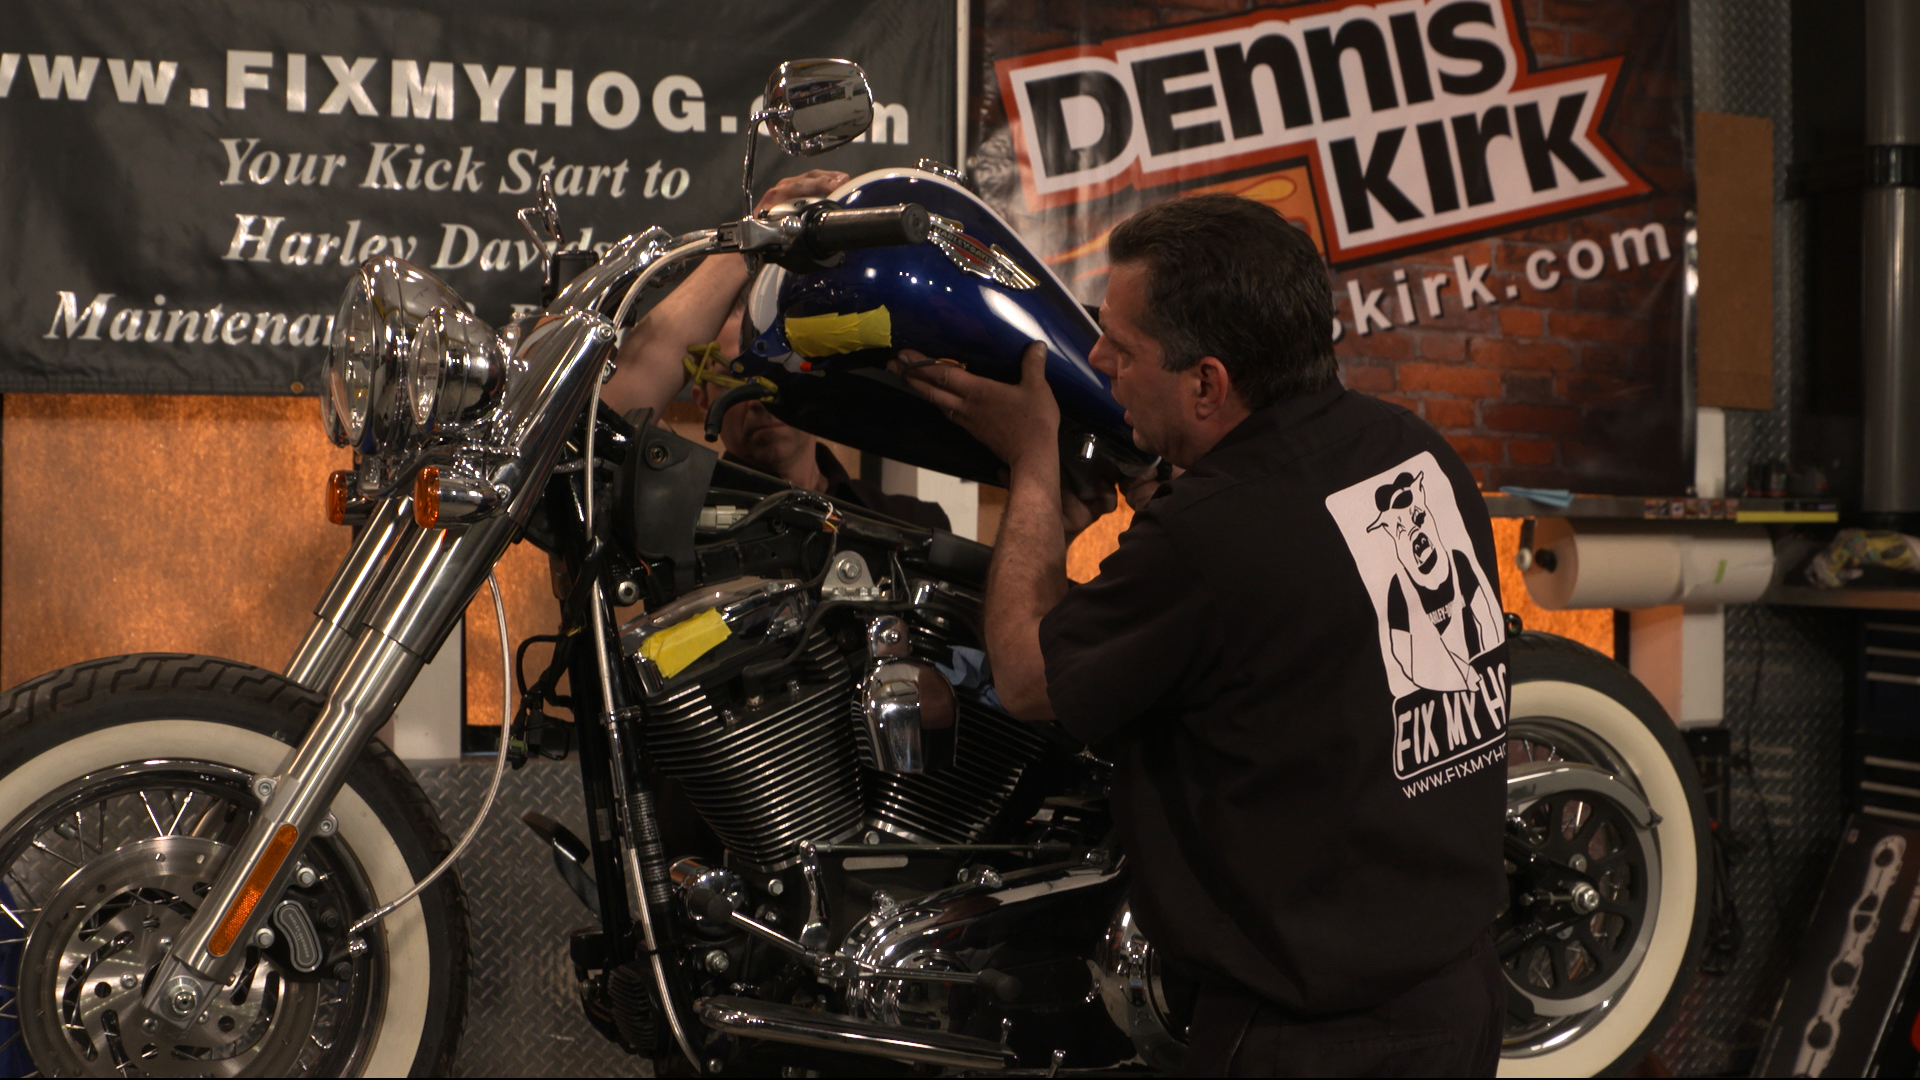 Harley Davidson Fuel Tank Removal Fix My Hog